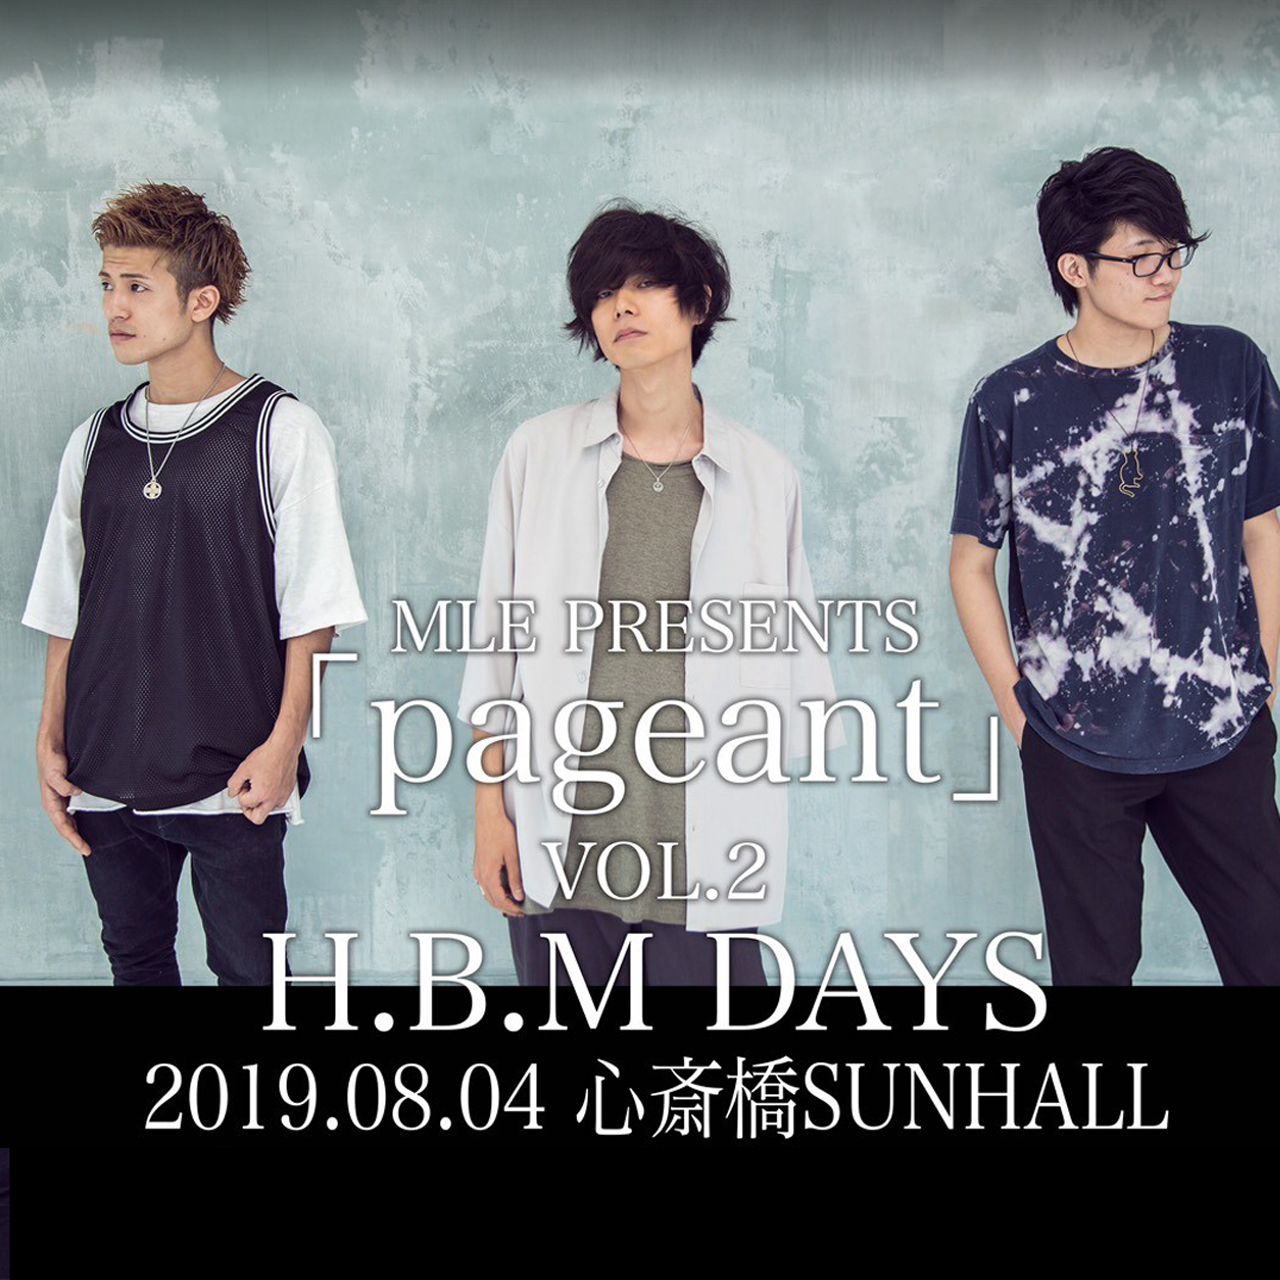 MLE PRESENTS「pageant」VOL.2 - H.B.M DAYS